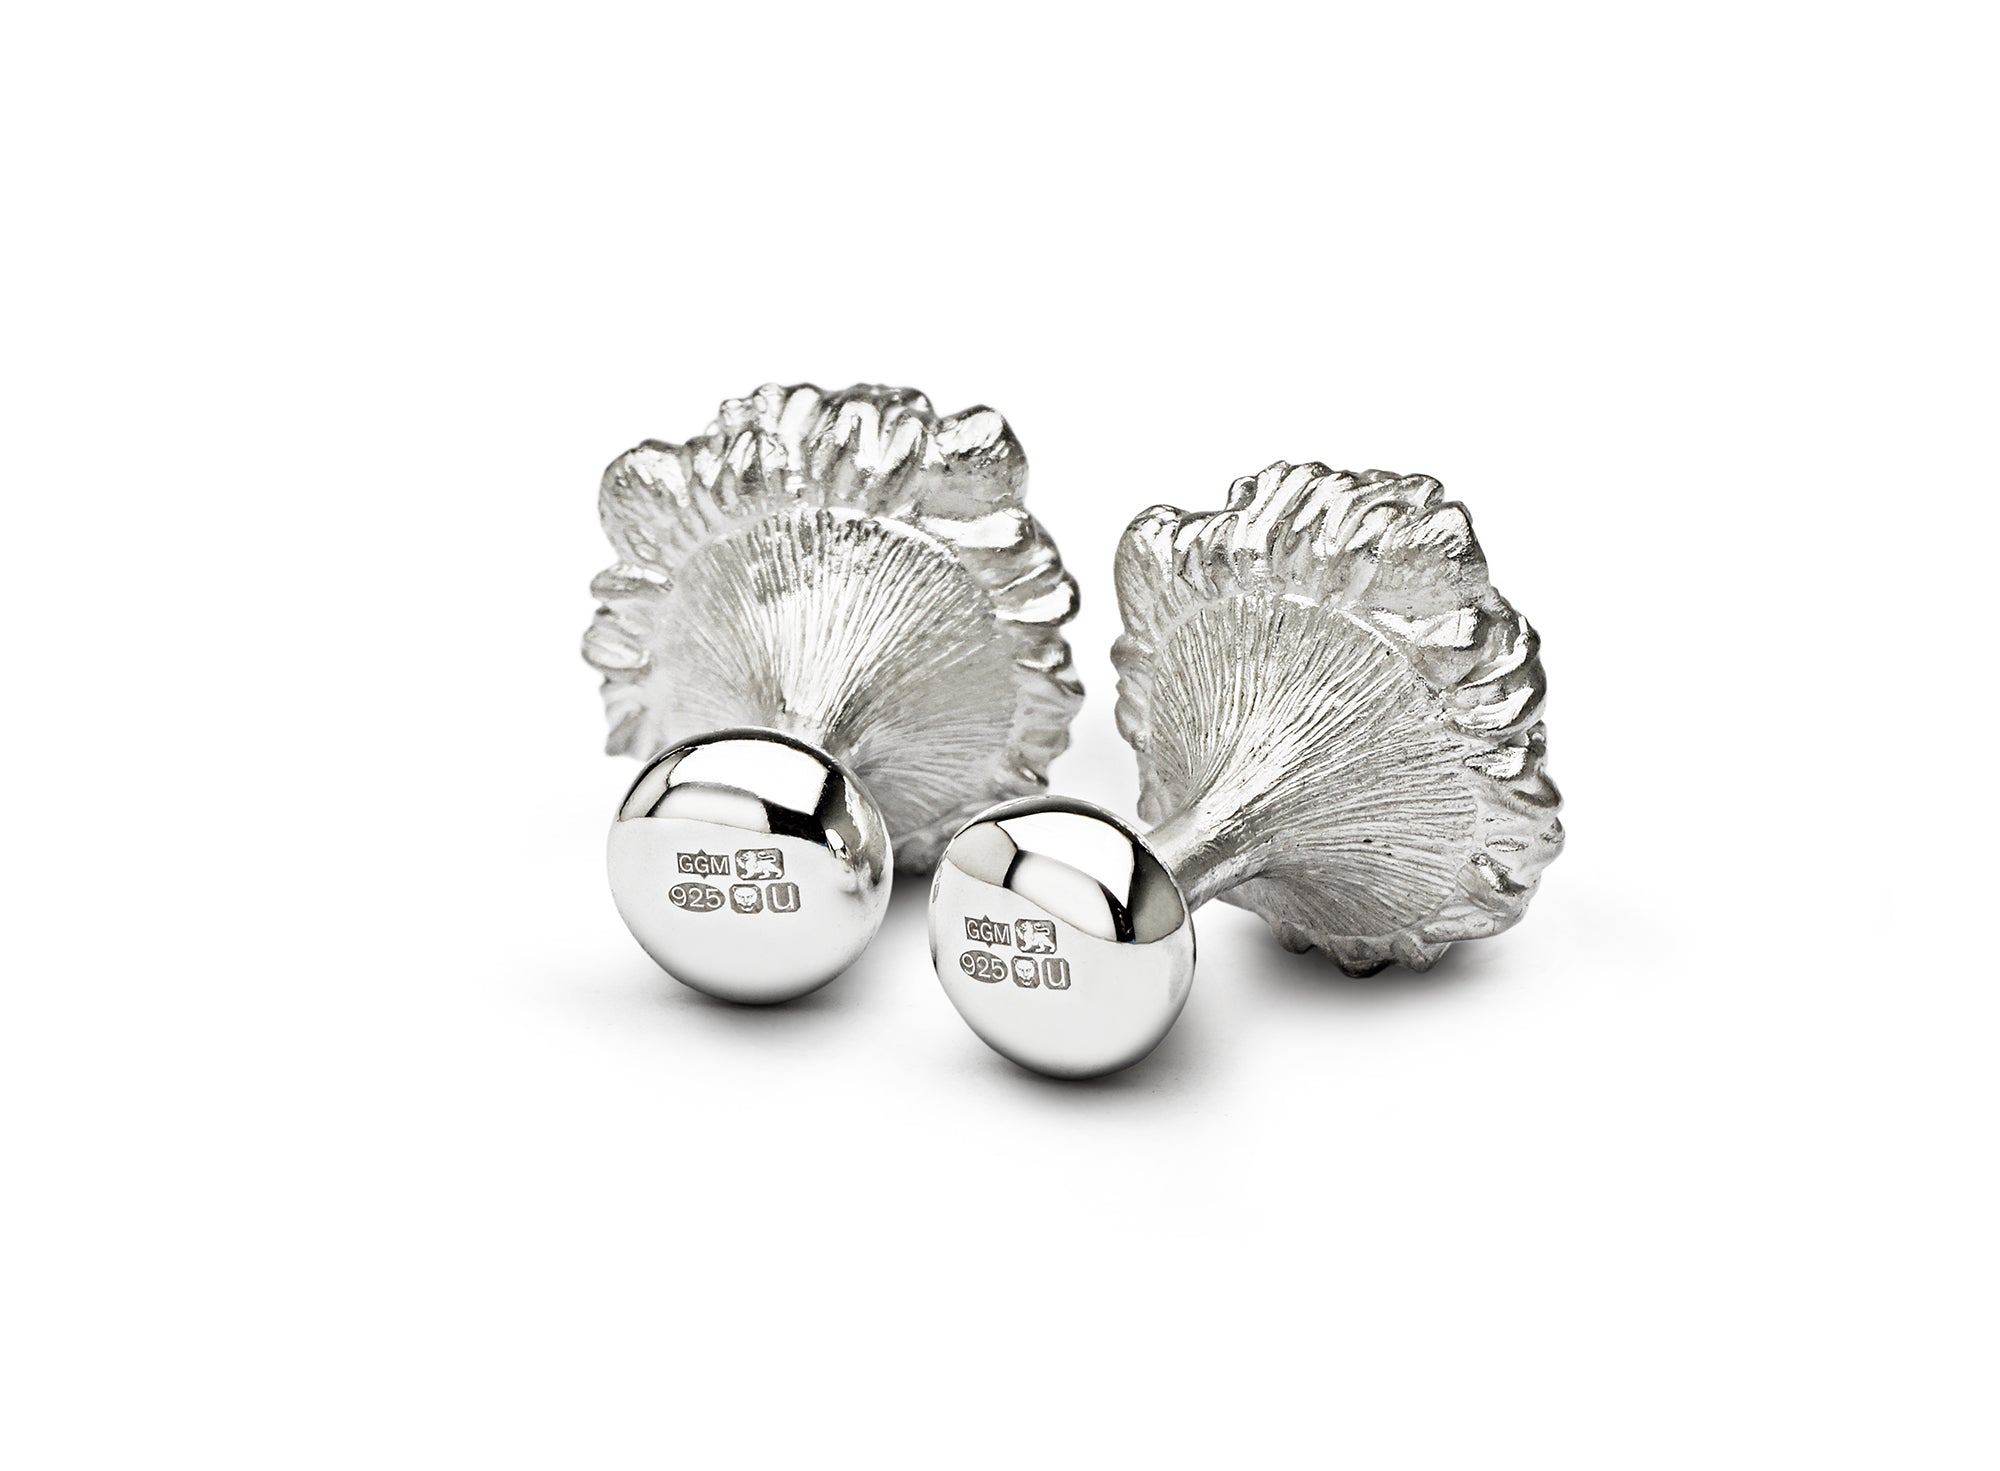 Luangwa Lion cufflinks for TUSK